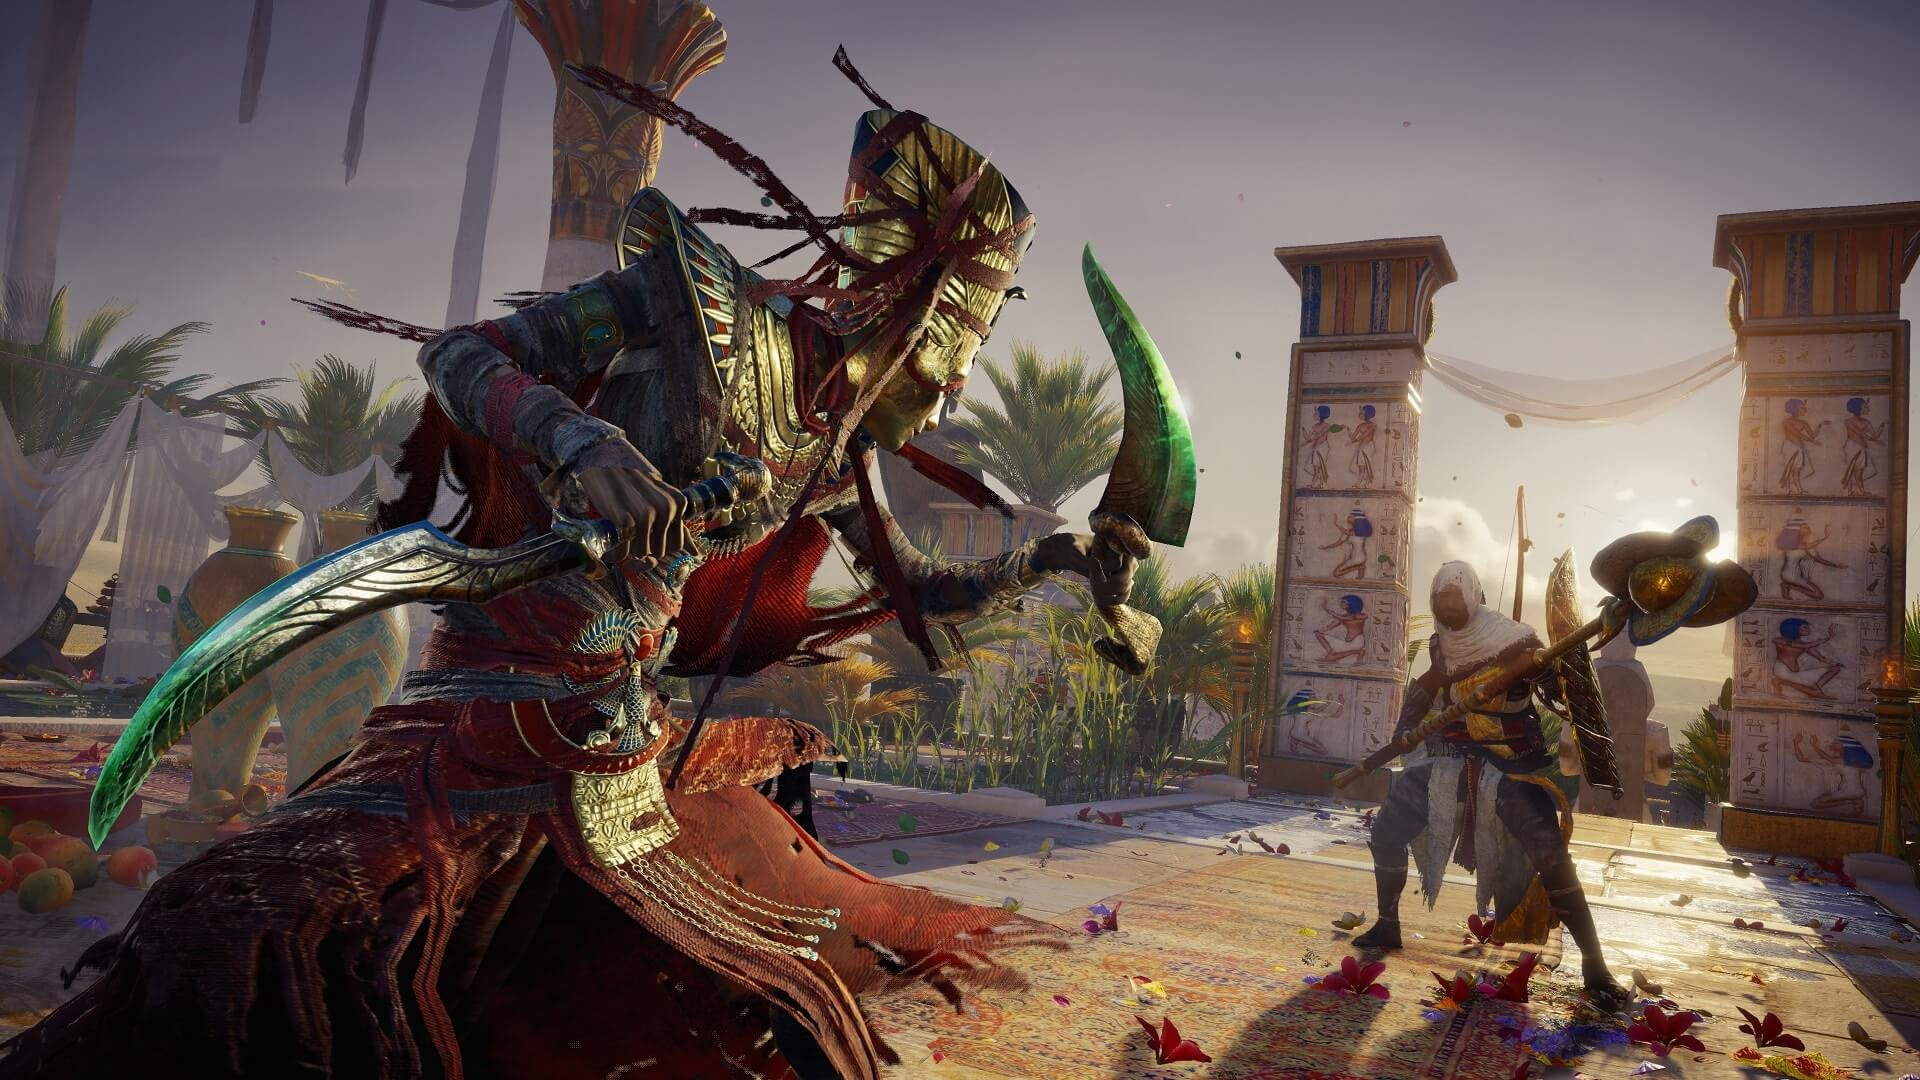 Assassins creed origins curse of the pharaohs review ps4 push assassins creed origins curse of the pharaohs review screenshot 2 of 3 malvernweather Choice Image